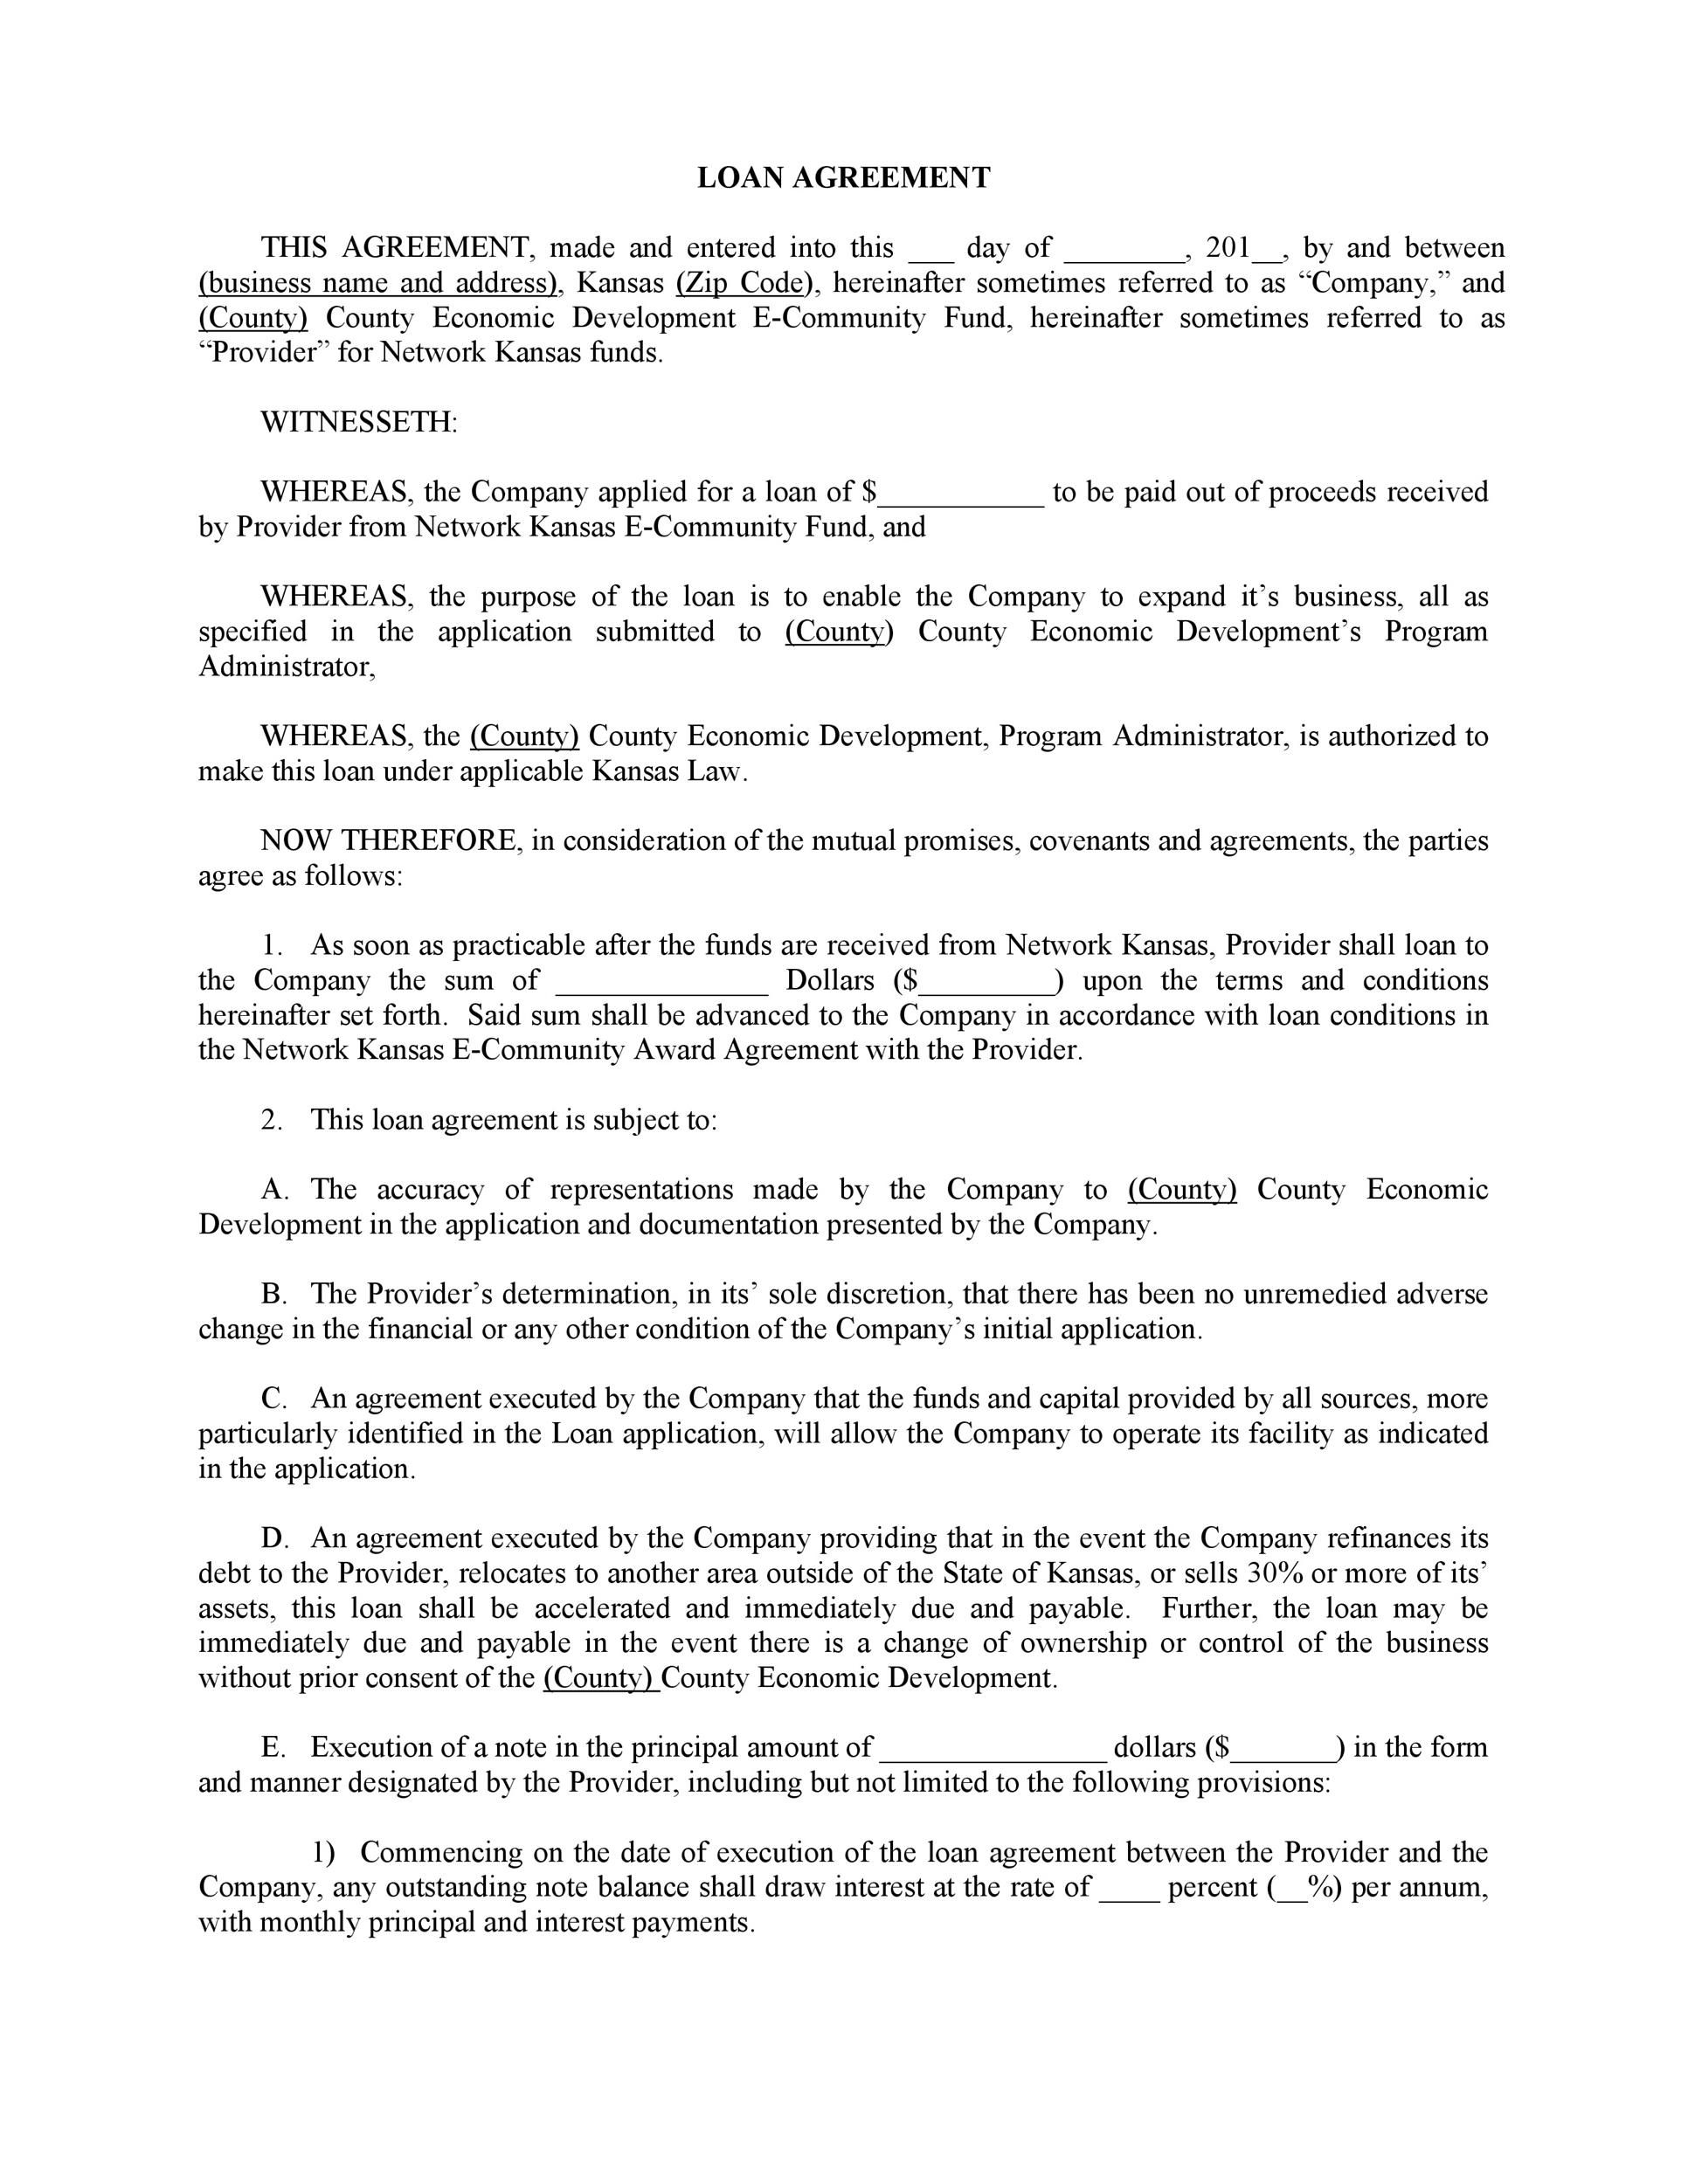 40 Free Loan Agreement Templates Word Pdf Template Lab